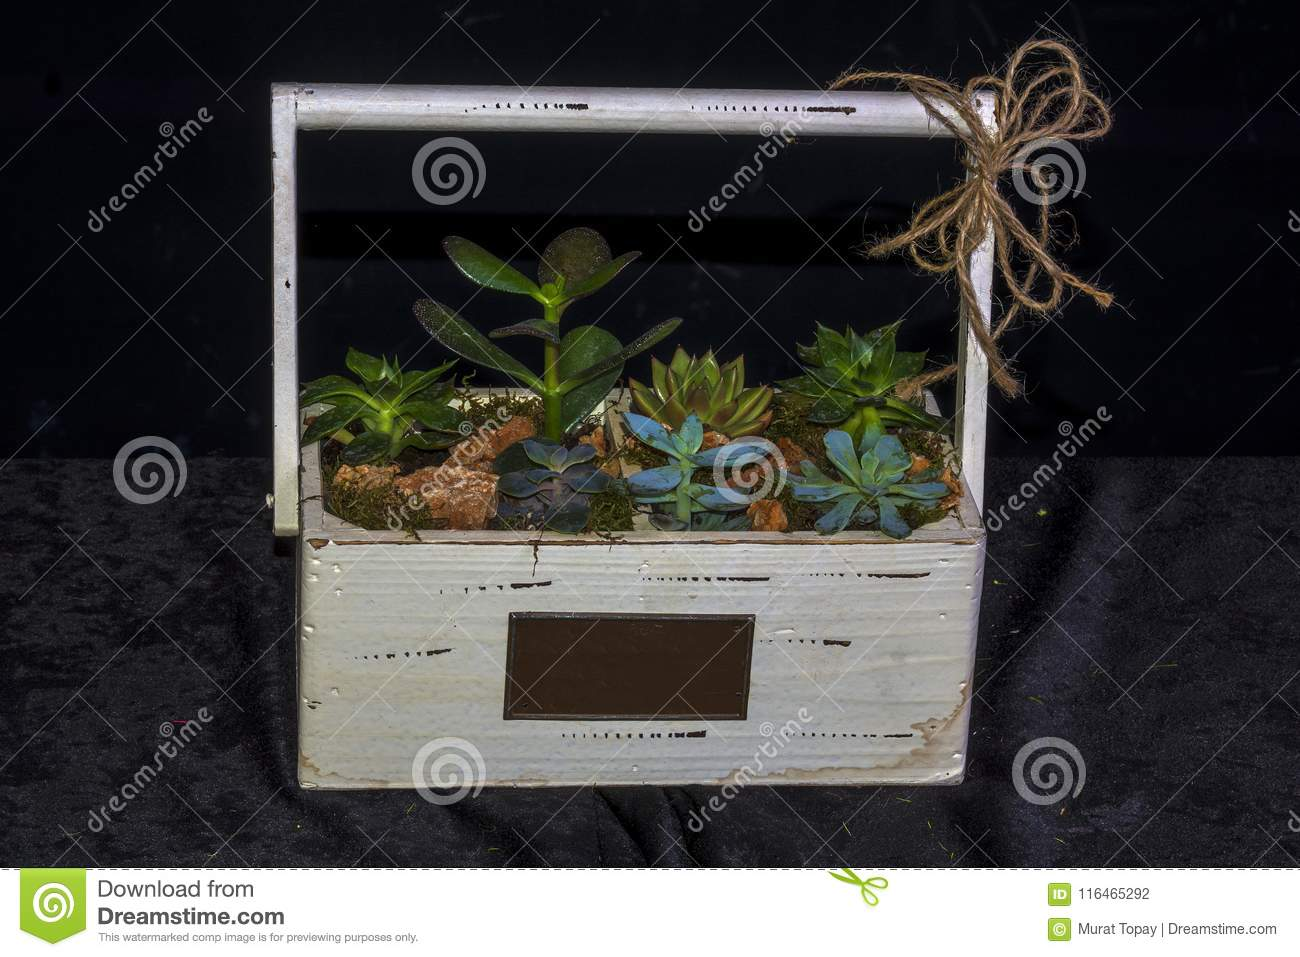 Tropical Gardens Created In Terrarium Glass Containers Stock Photo